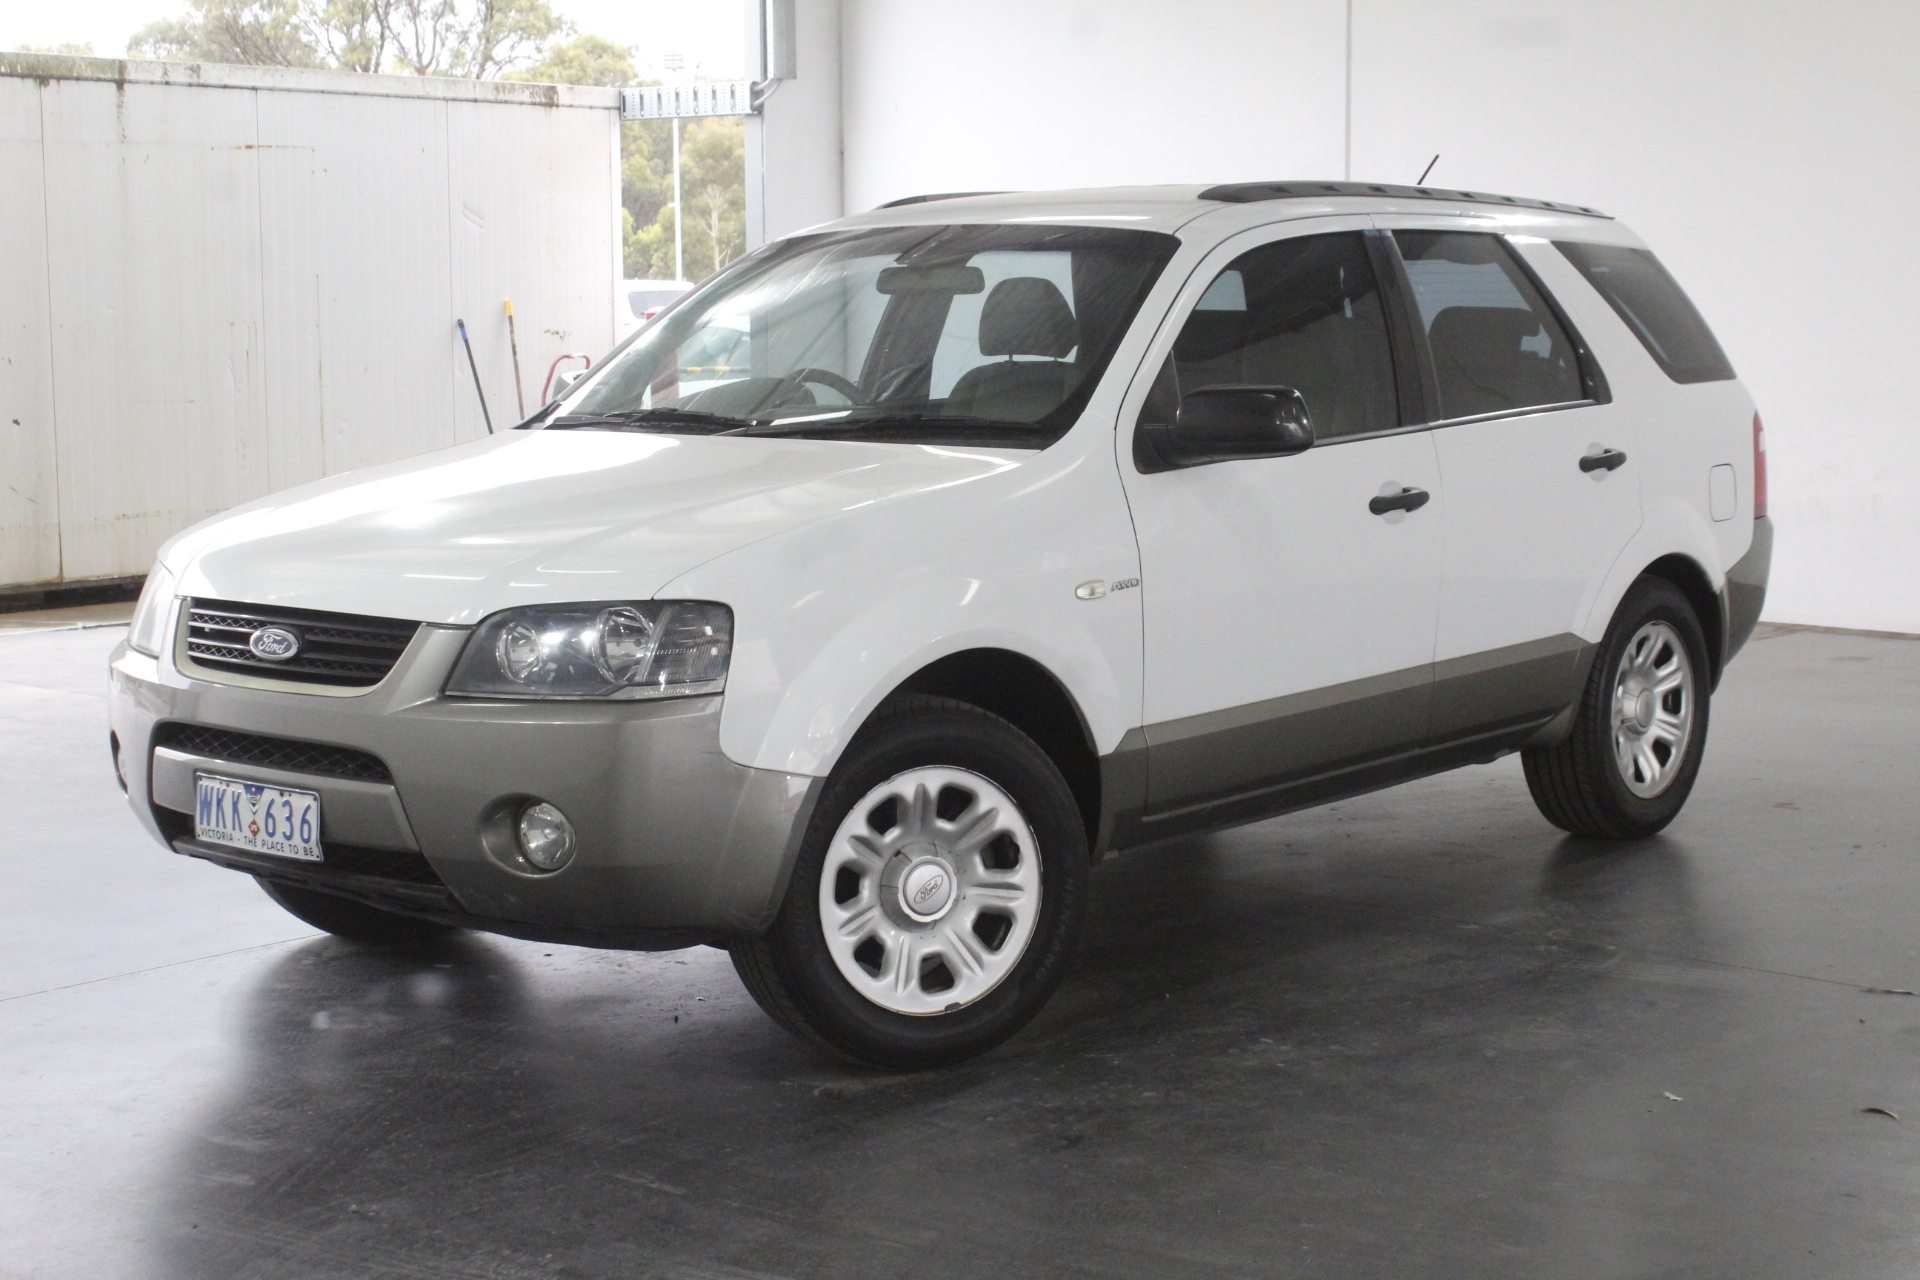 2006 Ford Territory TX (4x4) SY Automatic Wagon